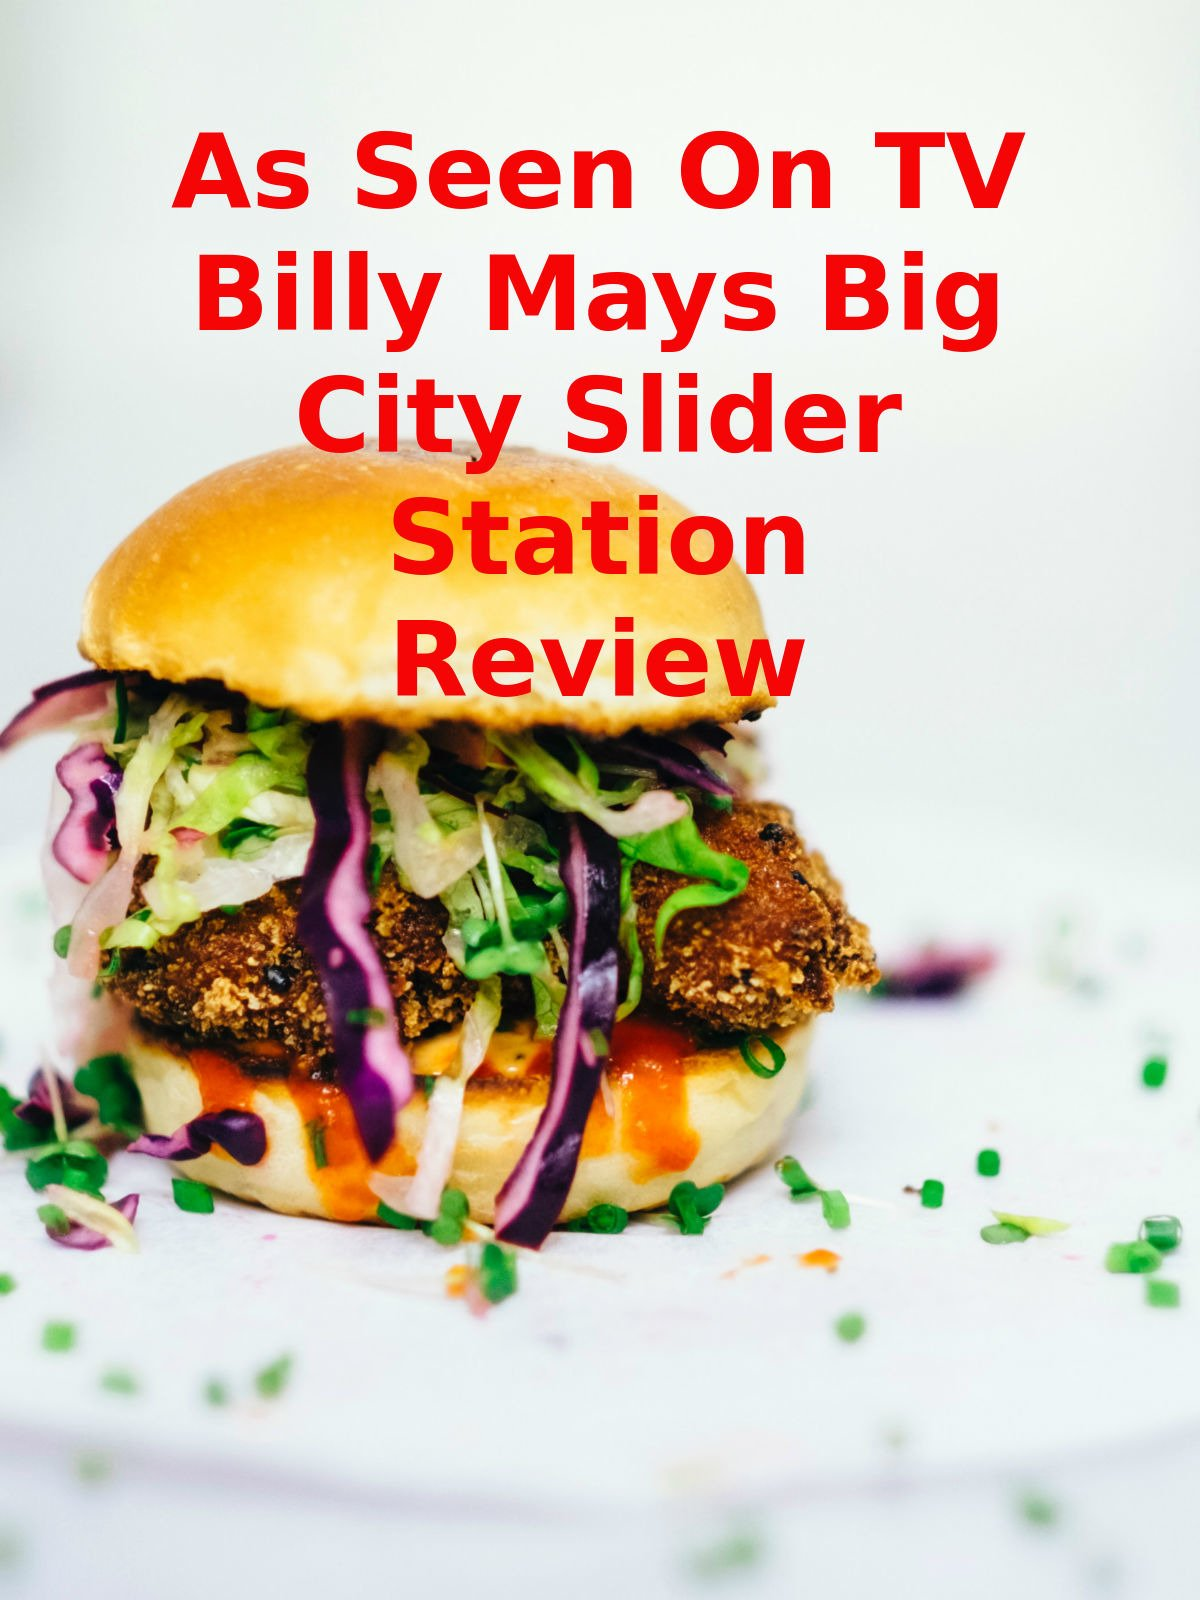 Review: As Seen On TV Billy Mays Big City Slider Station Review